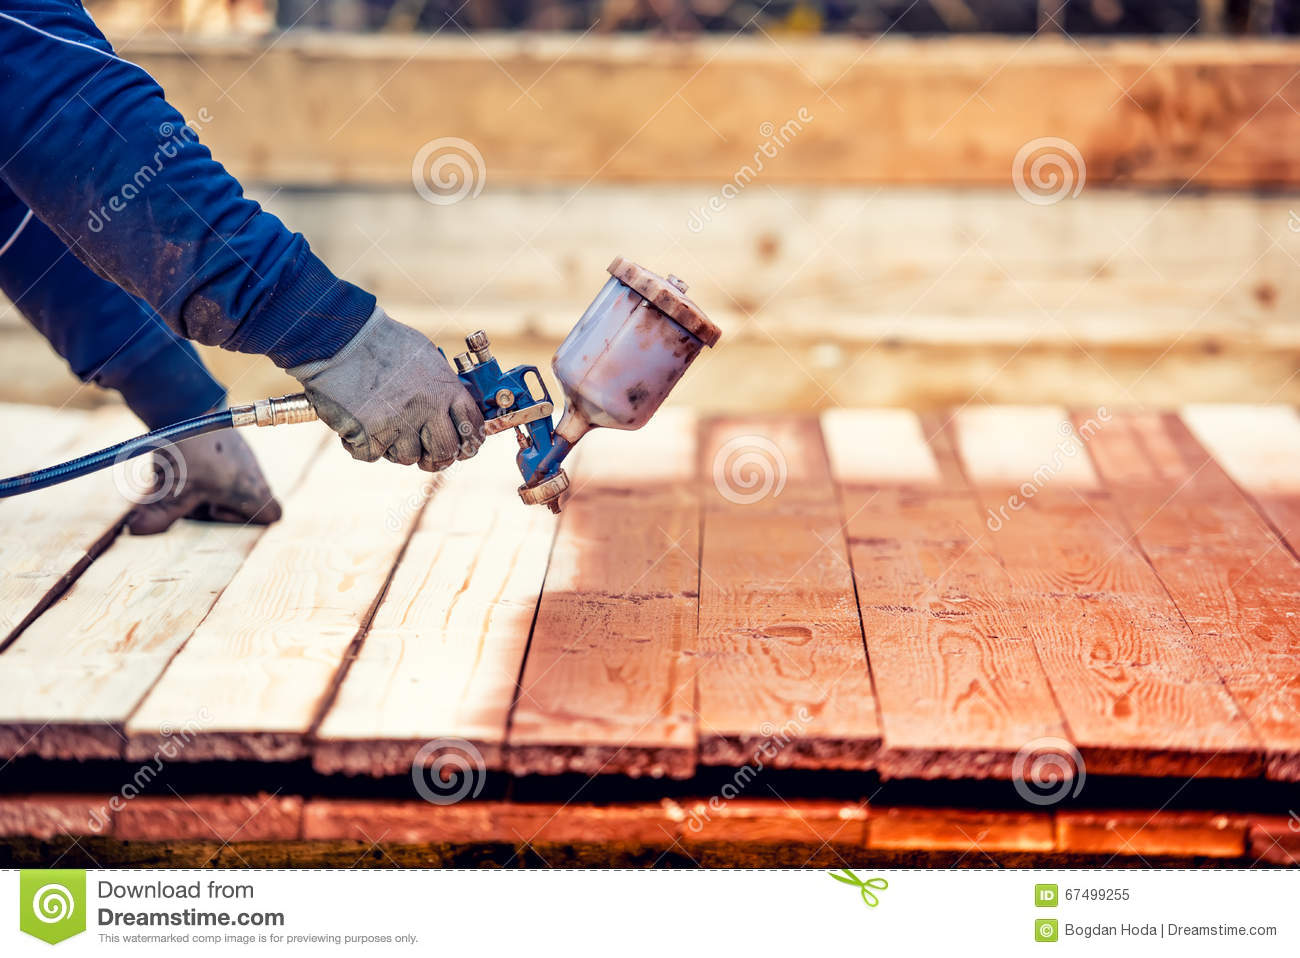 Worker Painting Brown Timber Renovating Exterior Wooden Fence Worker Using Spray Gun Stock